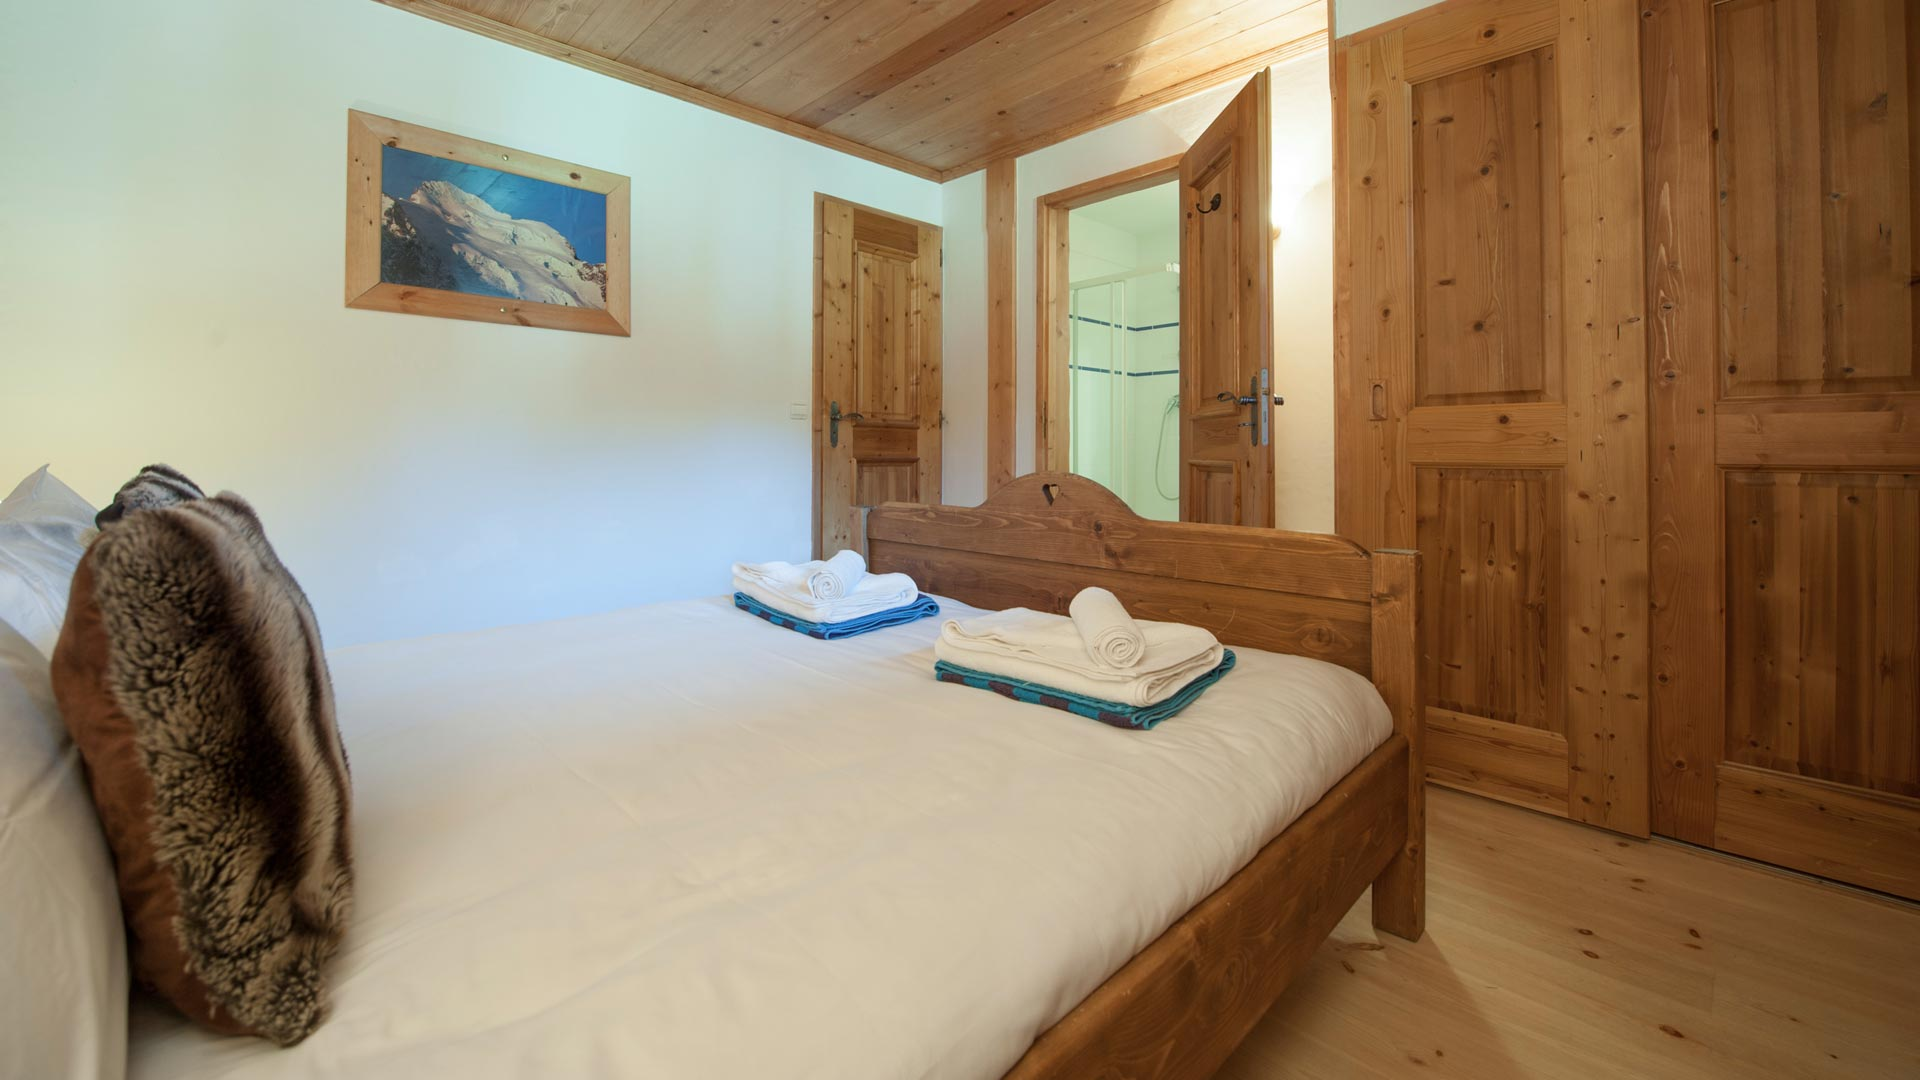 Master Bedroom in Sainte Foy Apt. in Ste Foy